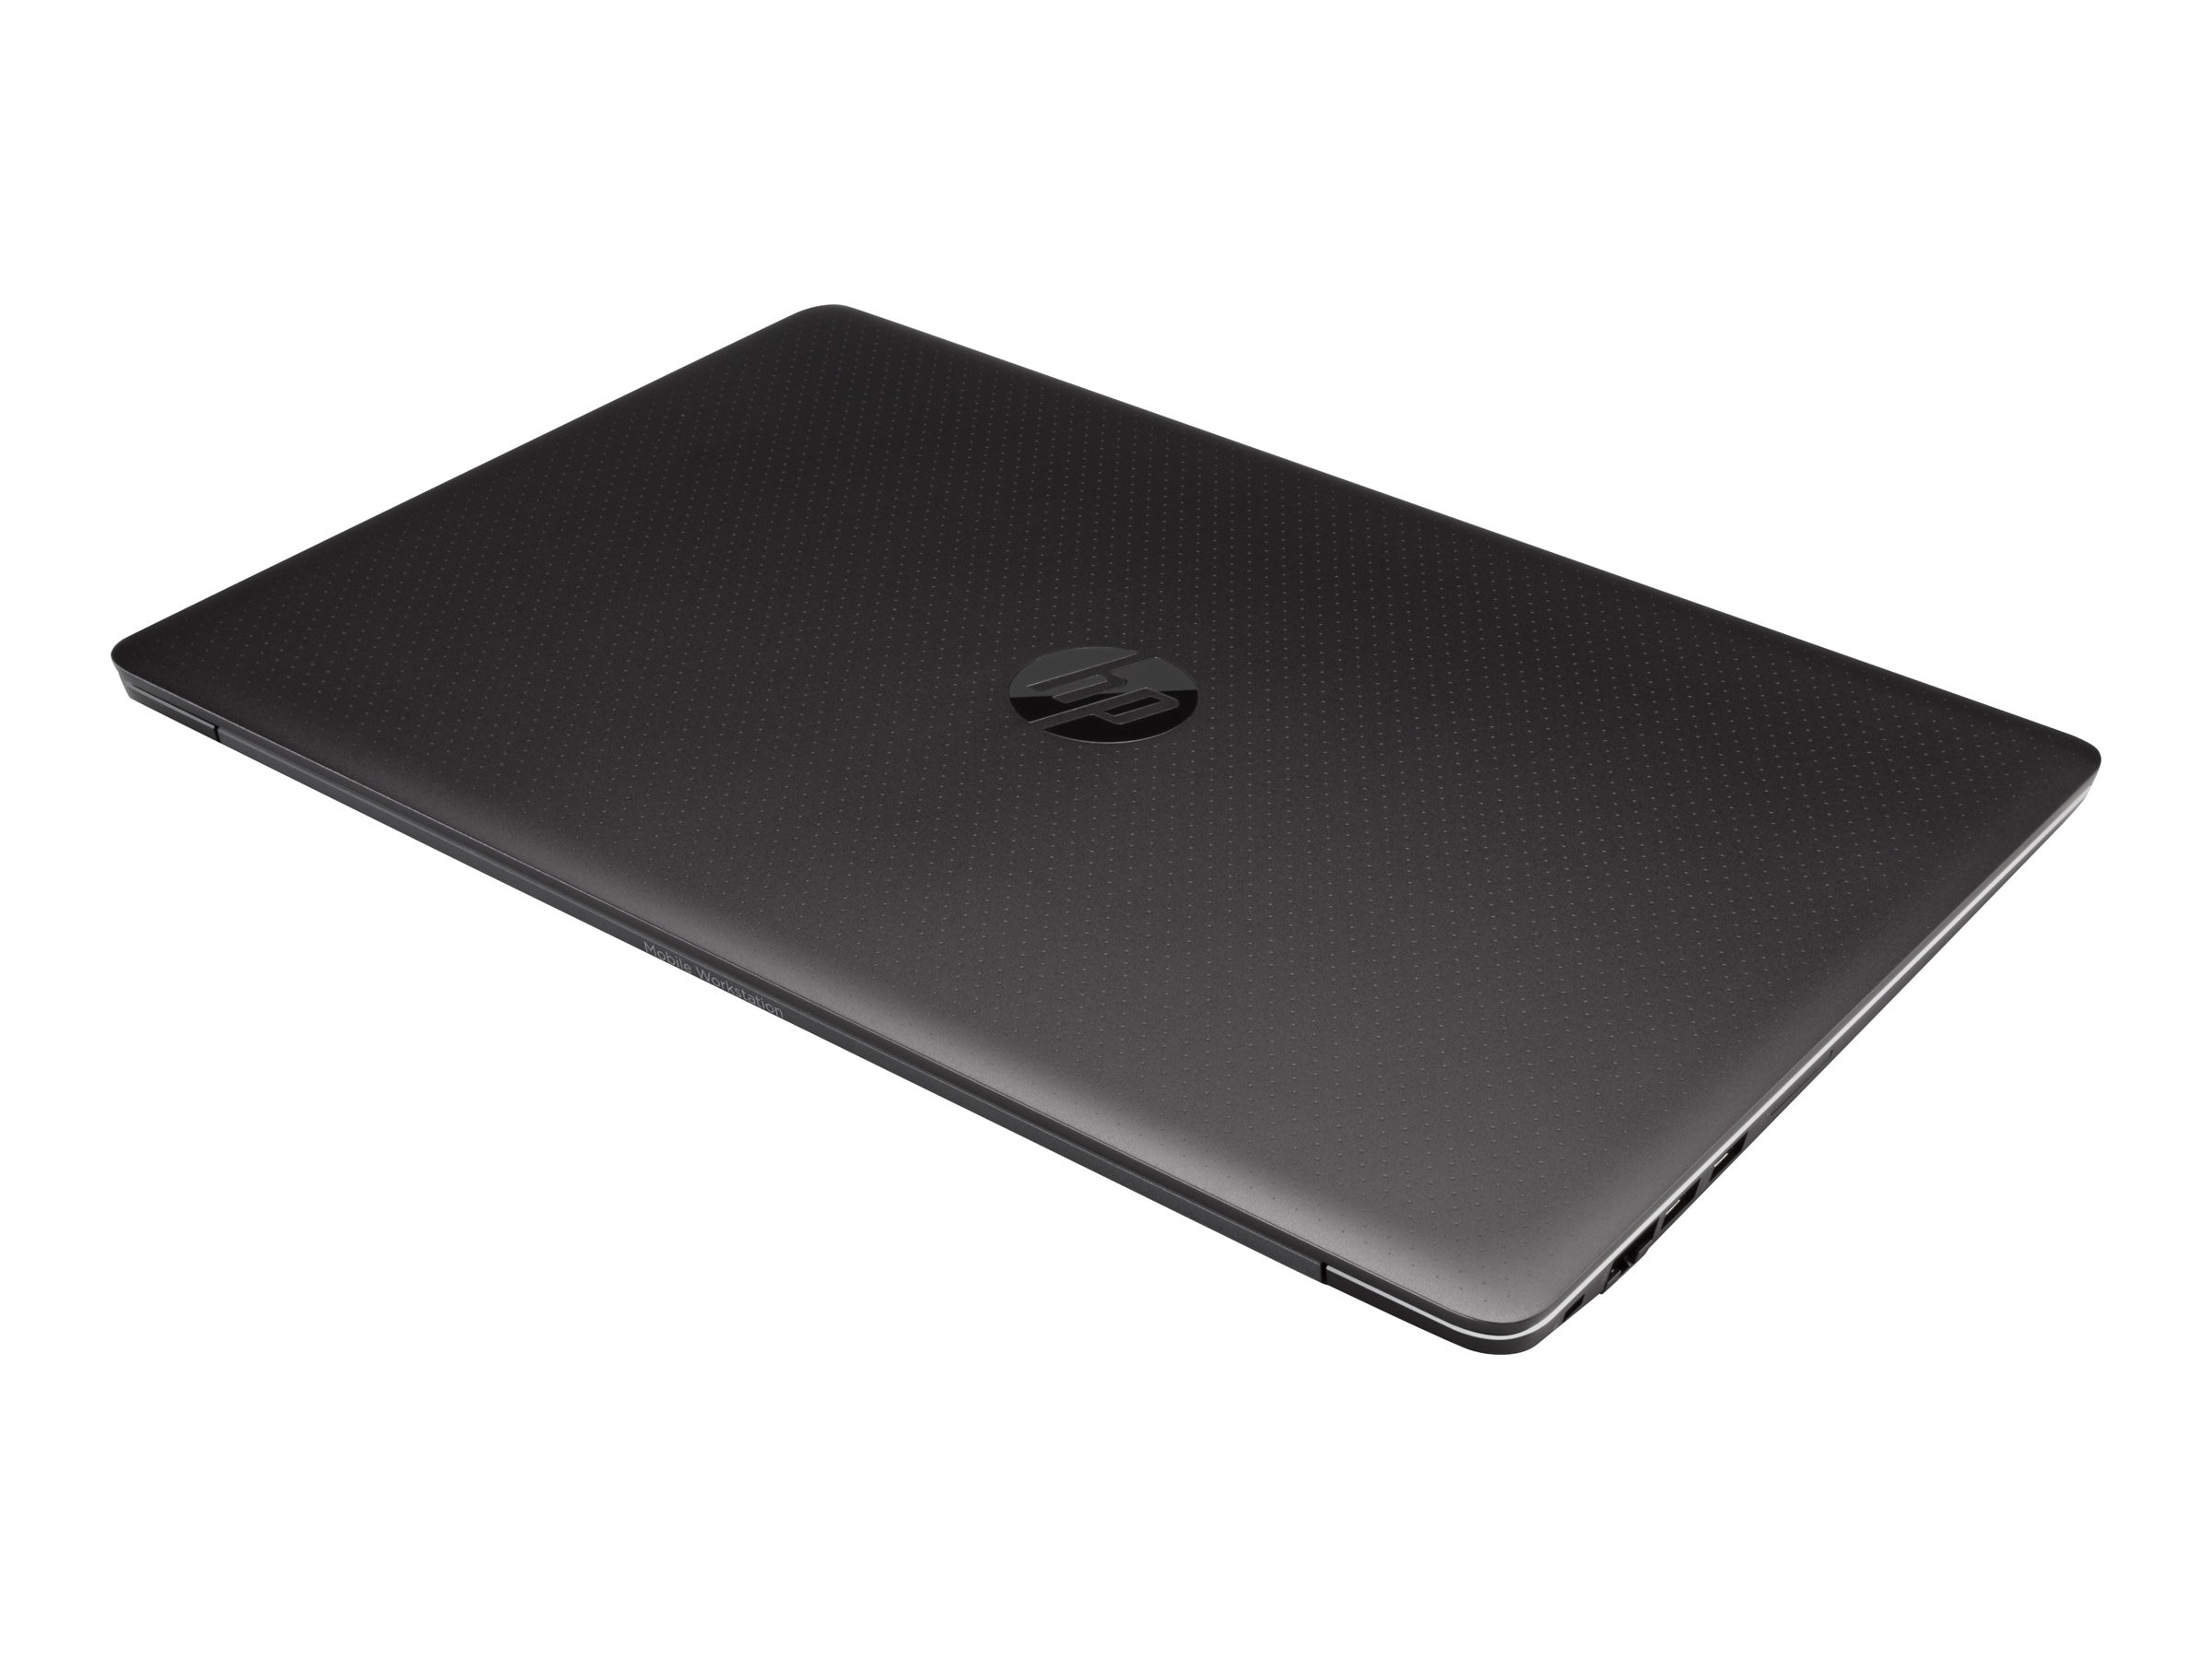 HP ZBook Studio G3 2.7GHz Core i7 15.6in display, T6E70UA#ABA